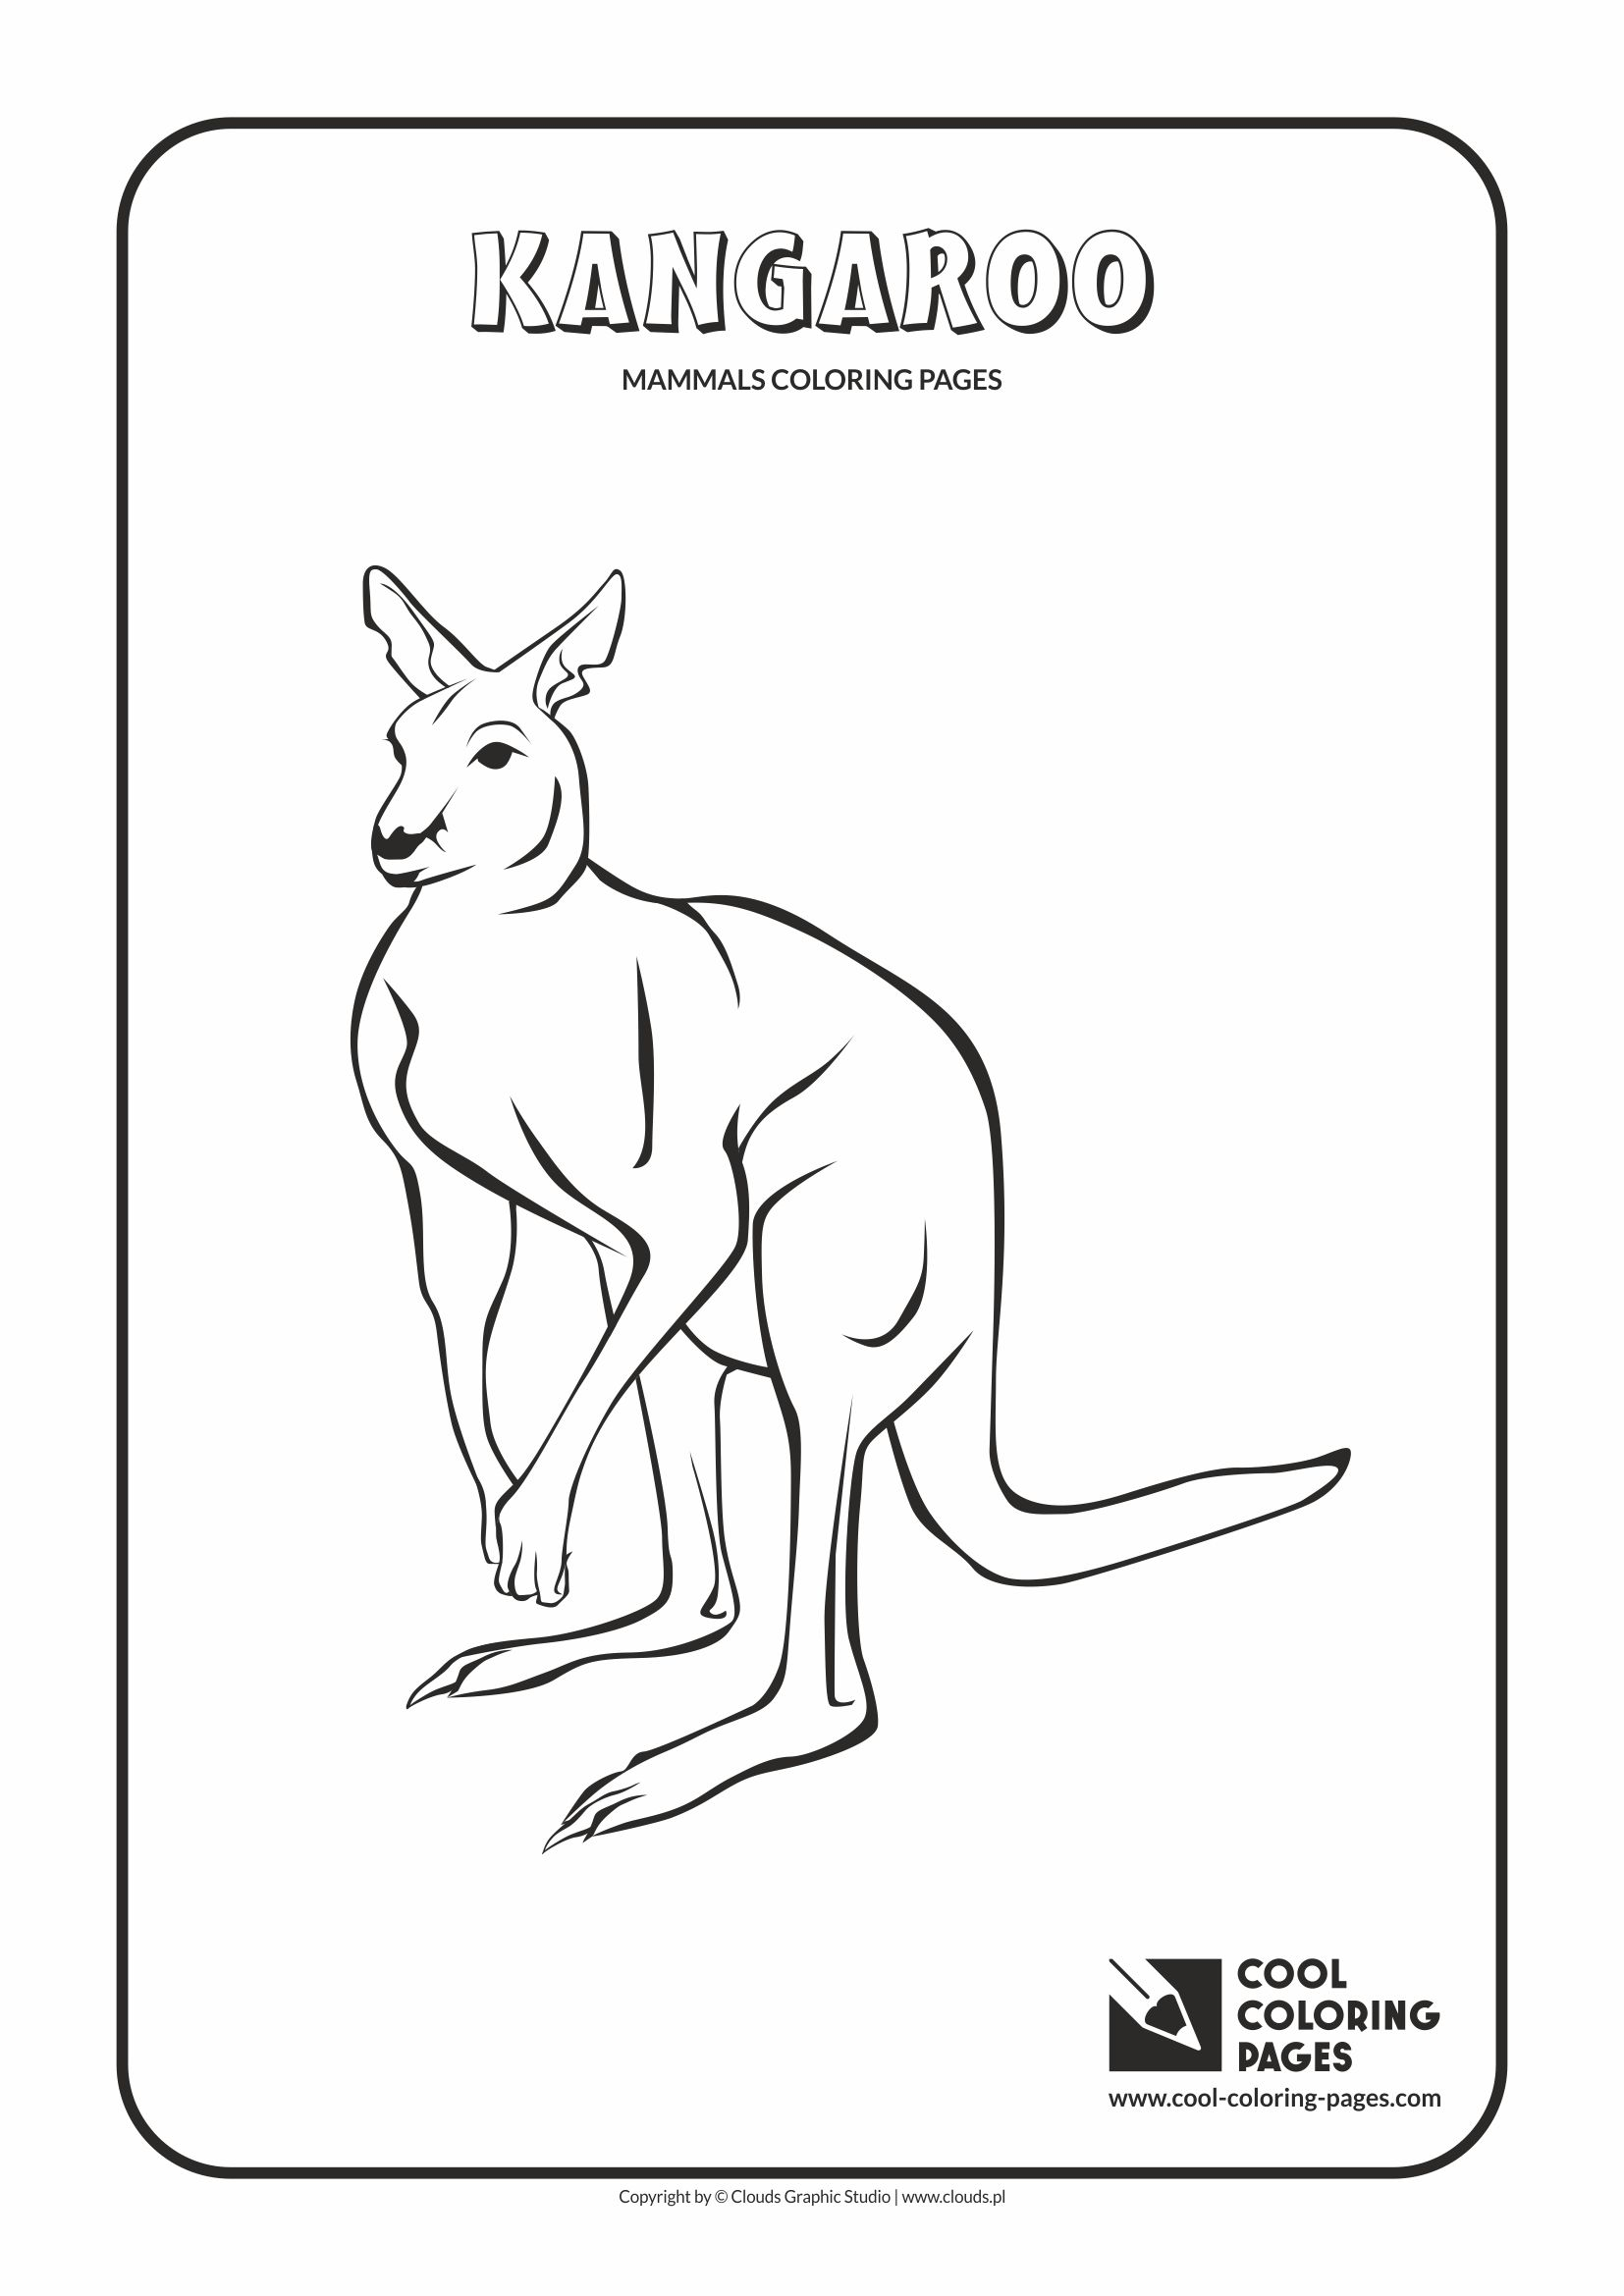 Cool Coloring Pages - Animals / Kangaroo / Coloring page with kangaroo